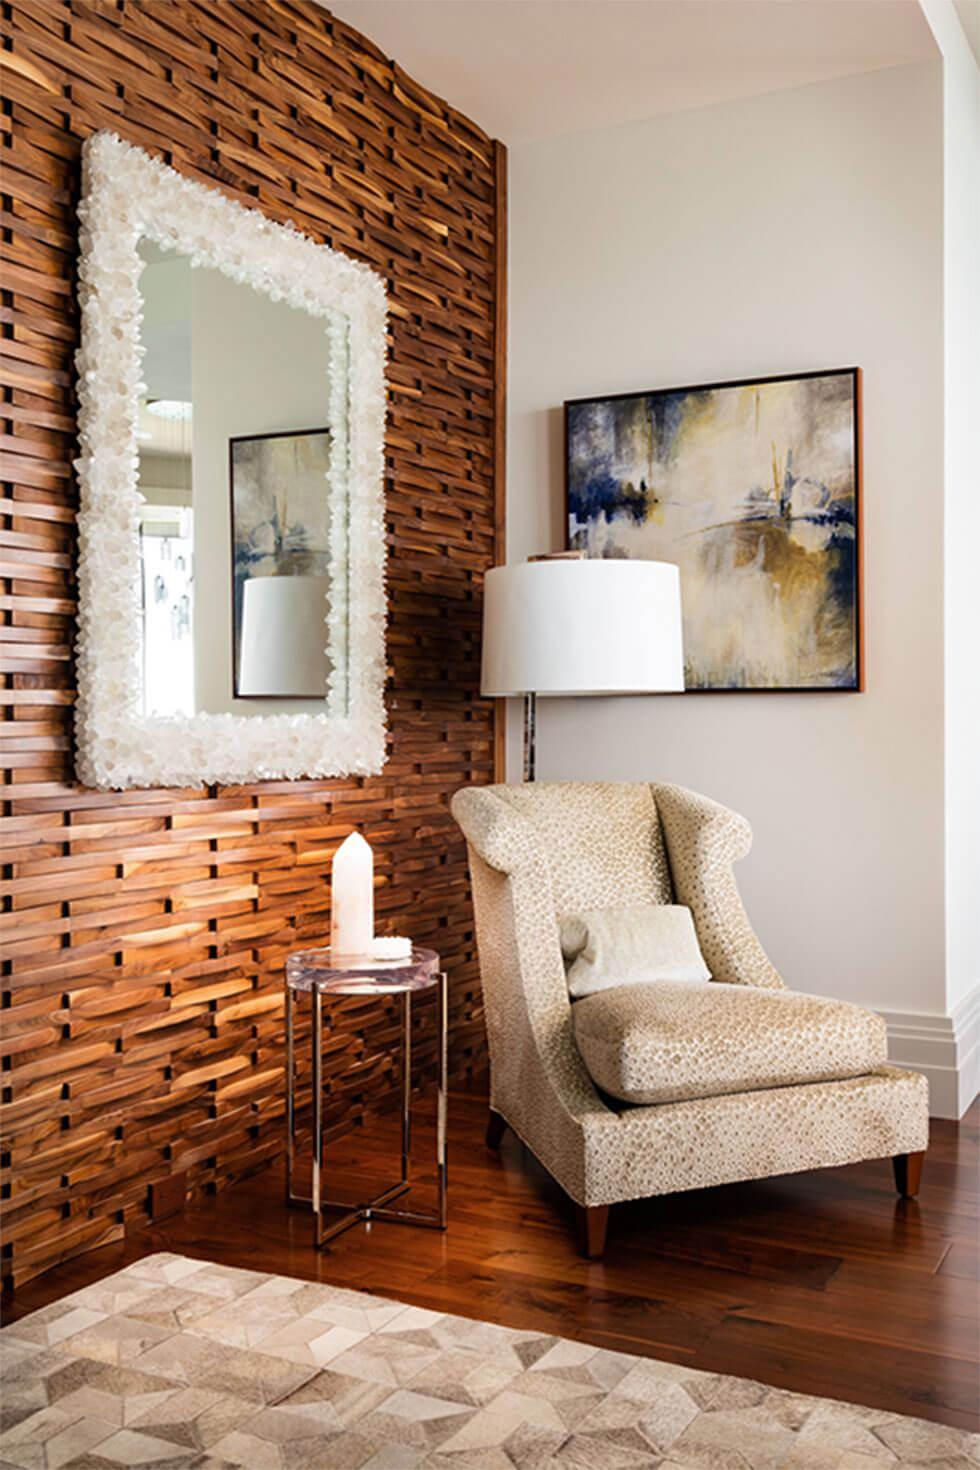 Living room with wooden tiled wall